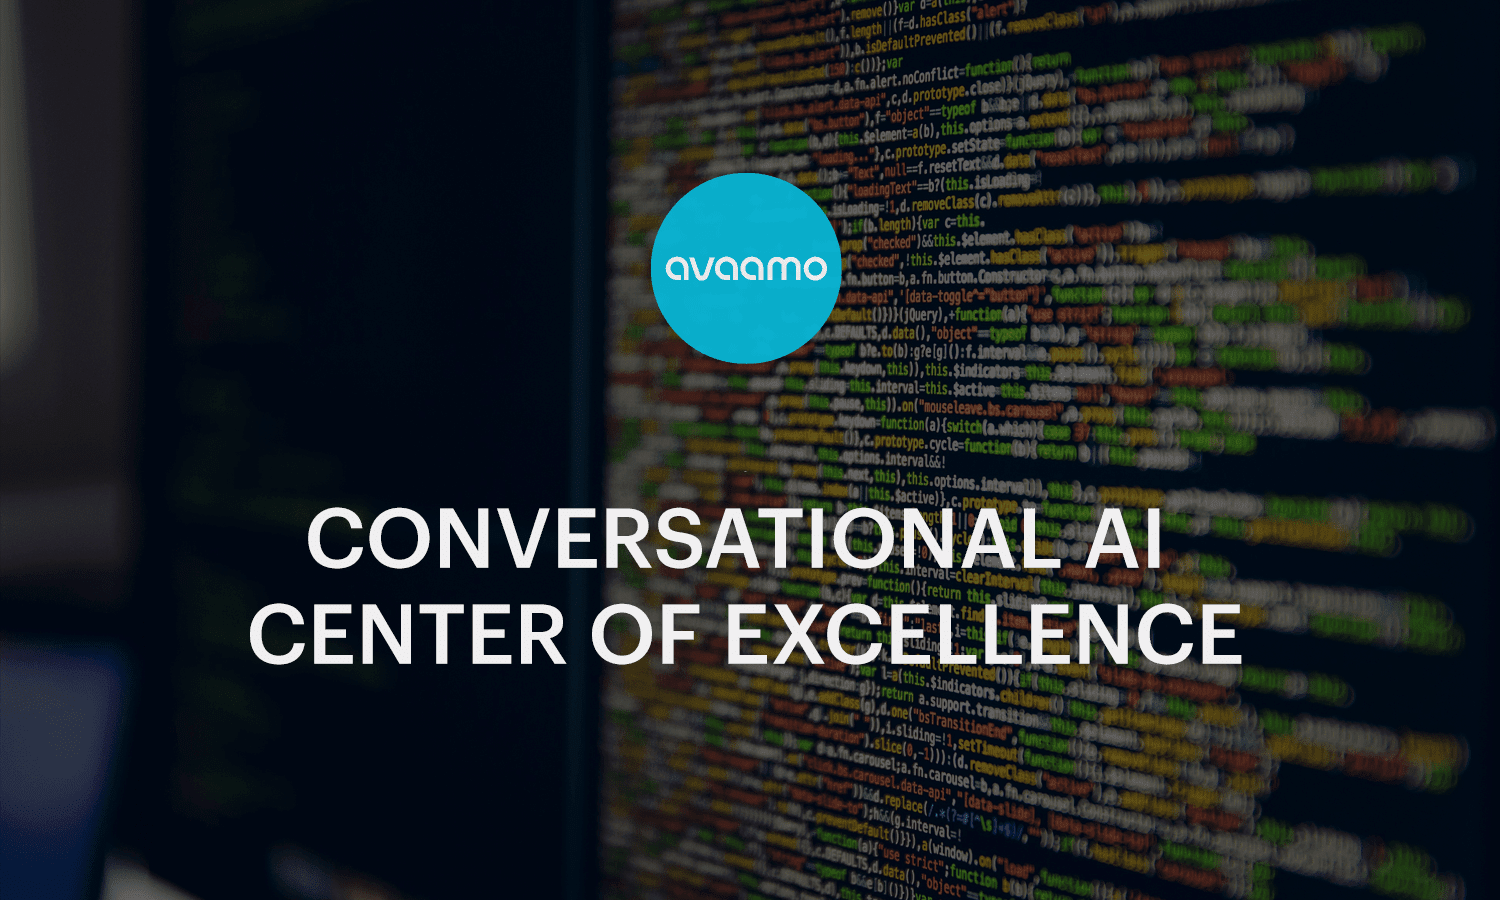 Excellence in conversational AI